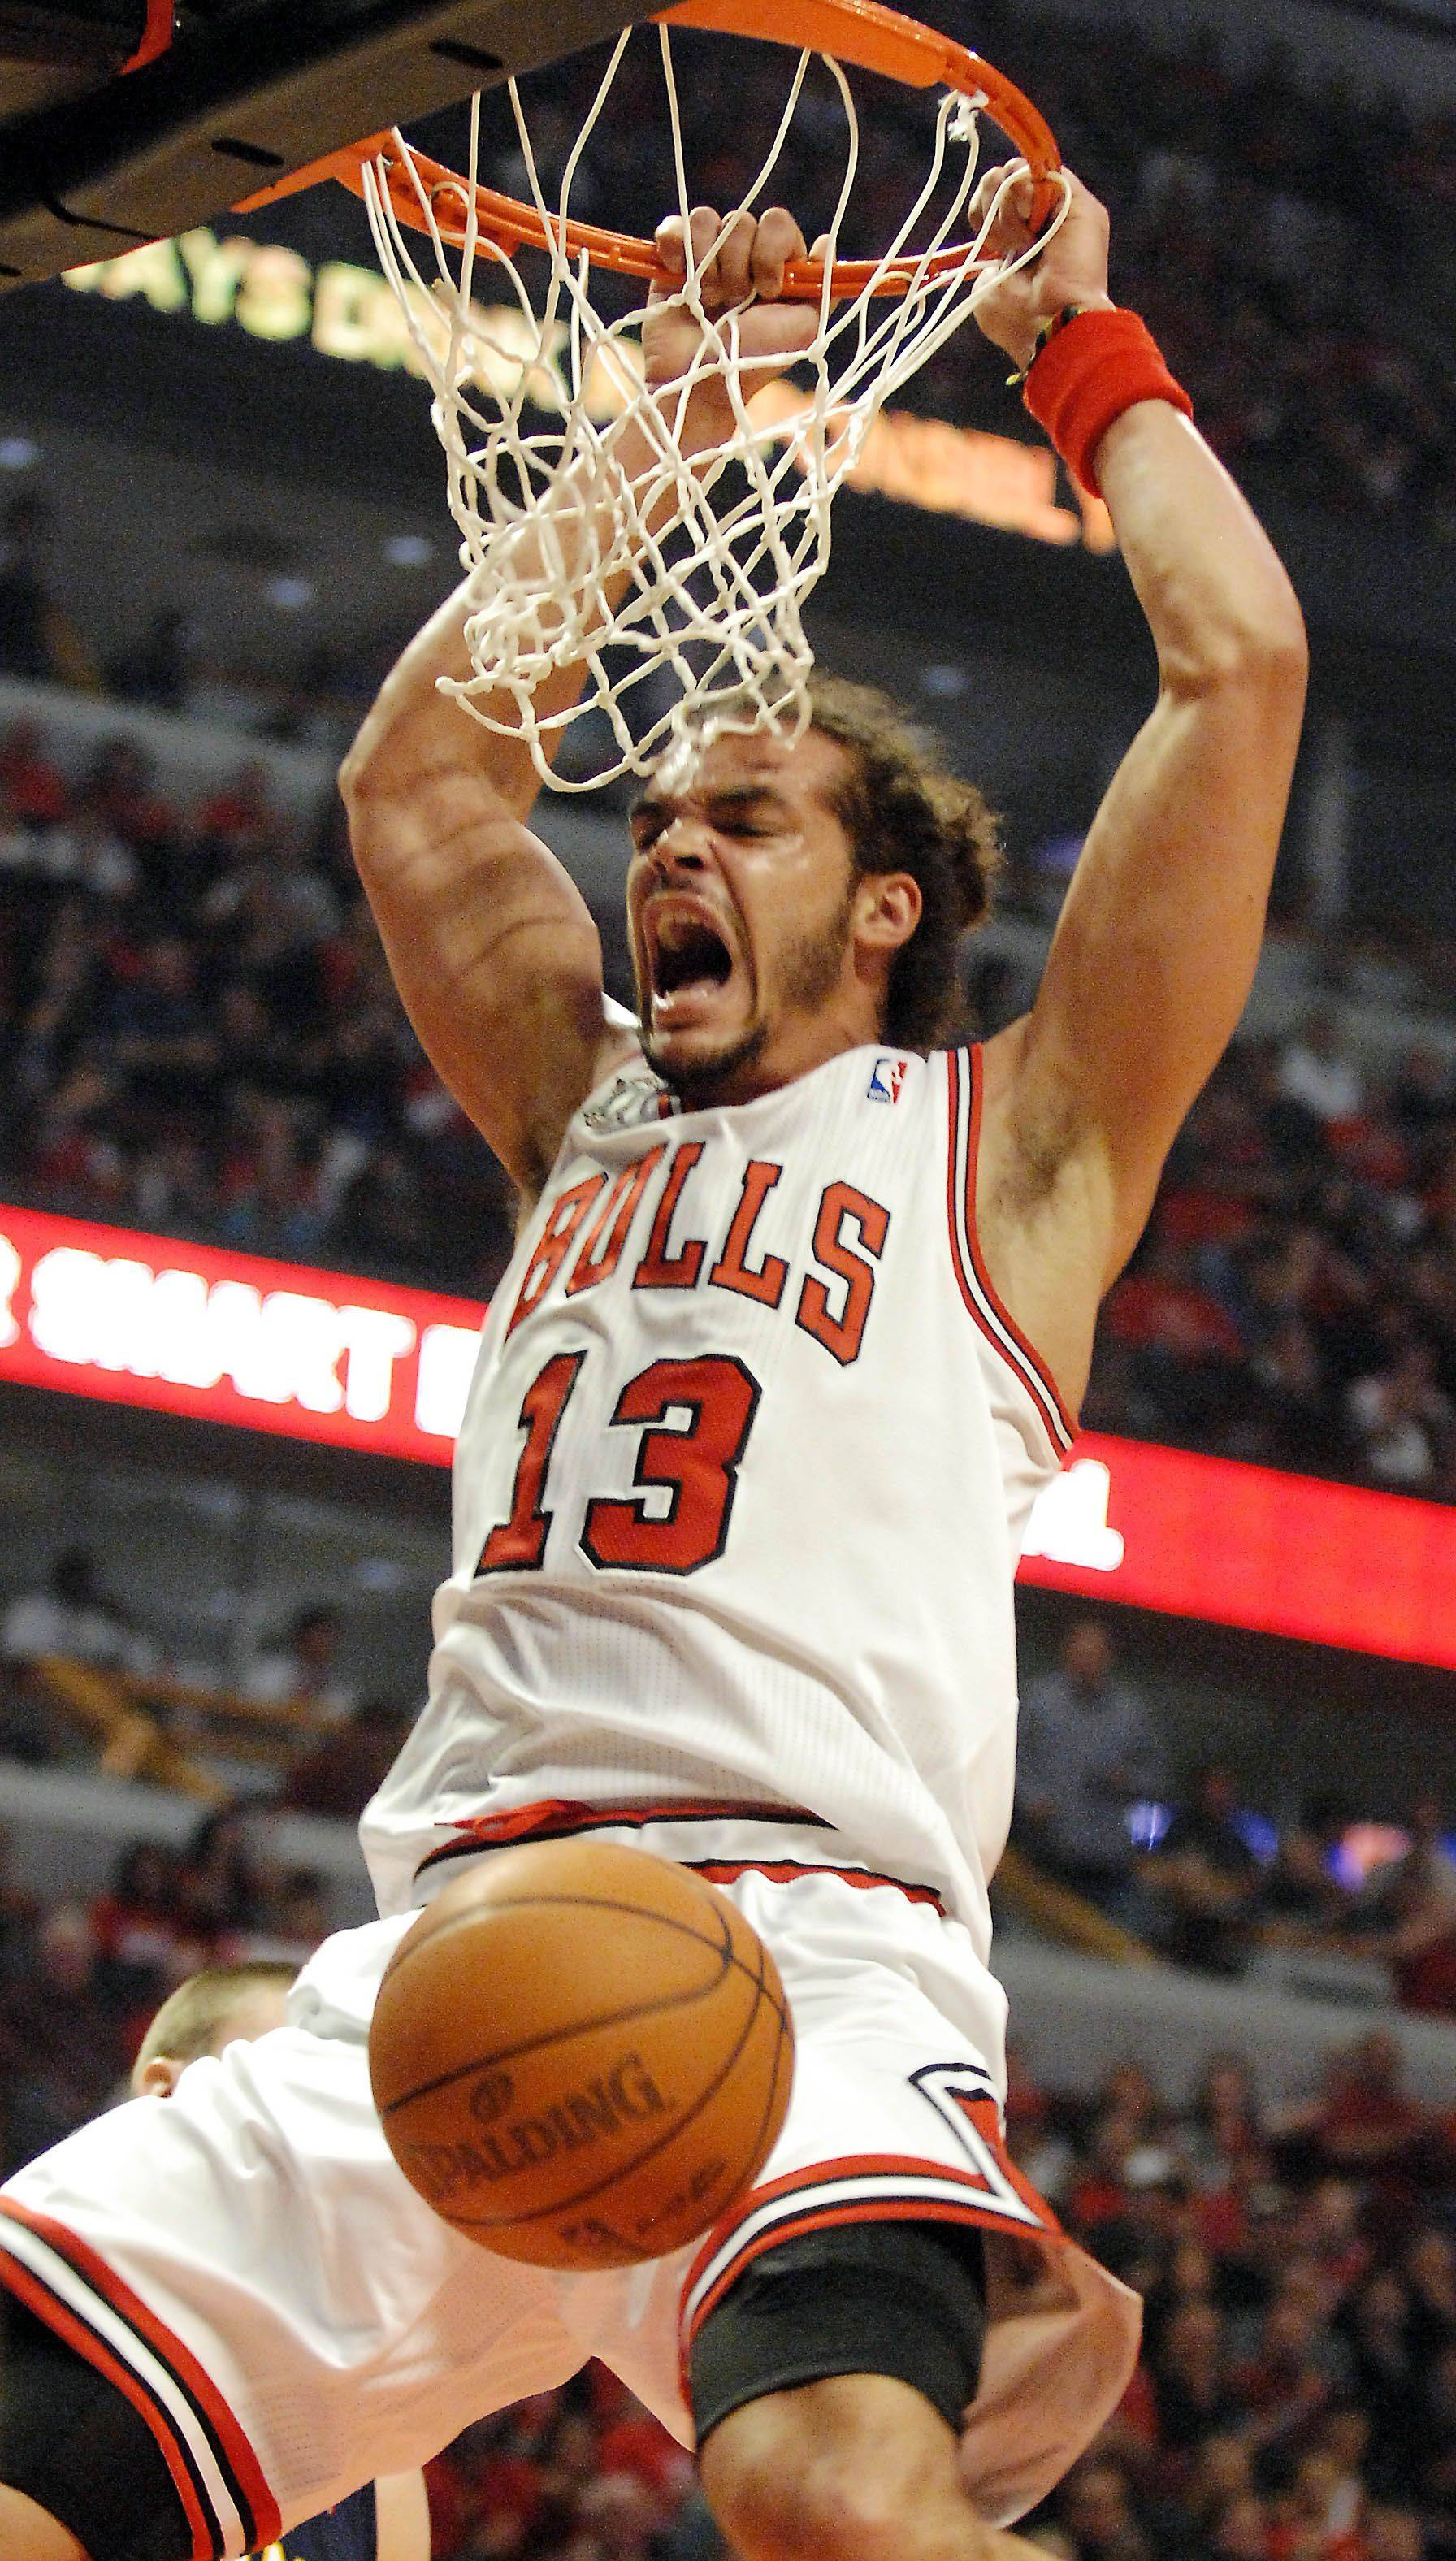 Chicago Bulls center Joakim Noah (13) throws down a first quarter dunk during Game One of the NBA Eastern Conference Quarterfinals Saturday at the United Center in Chicago.